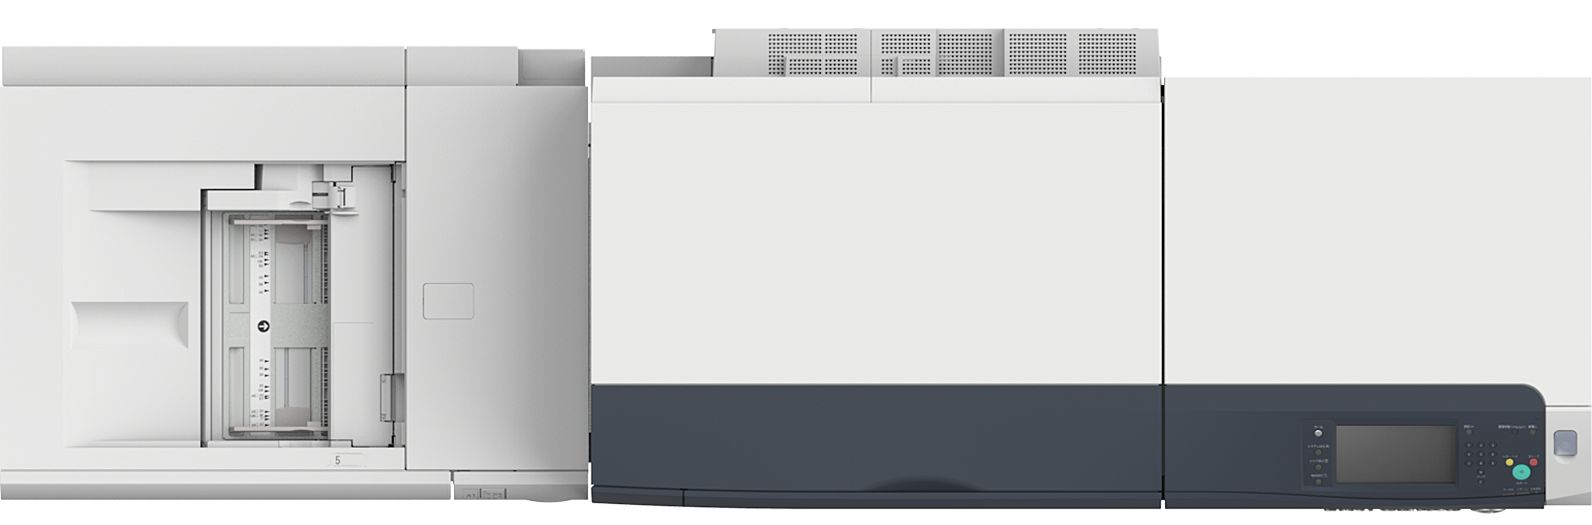 Xerox Versant 3100 Press With Images Office Prints Color